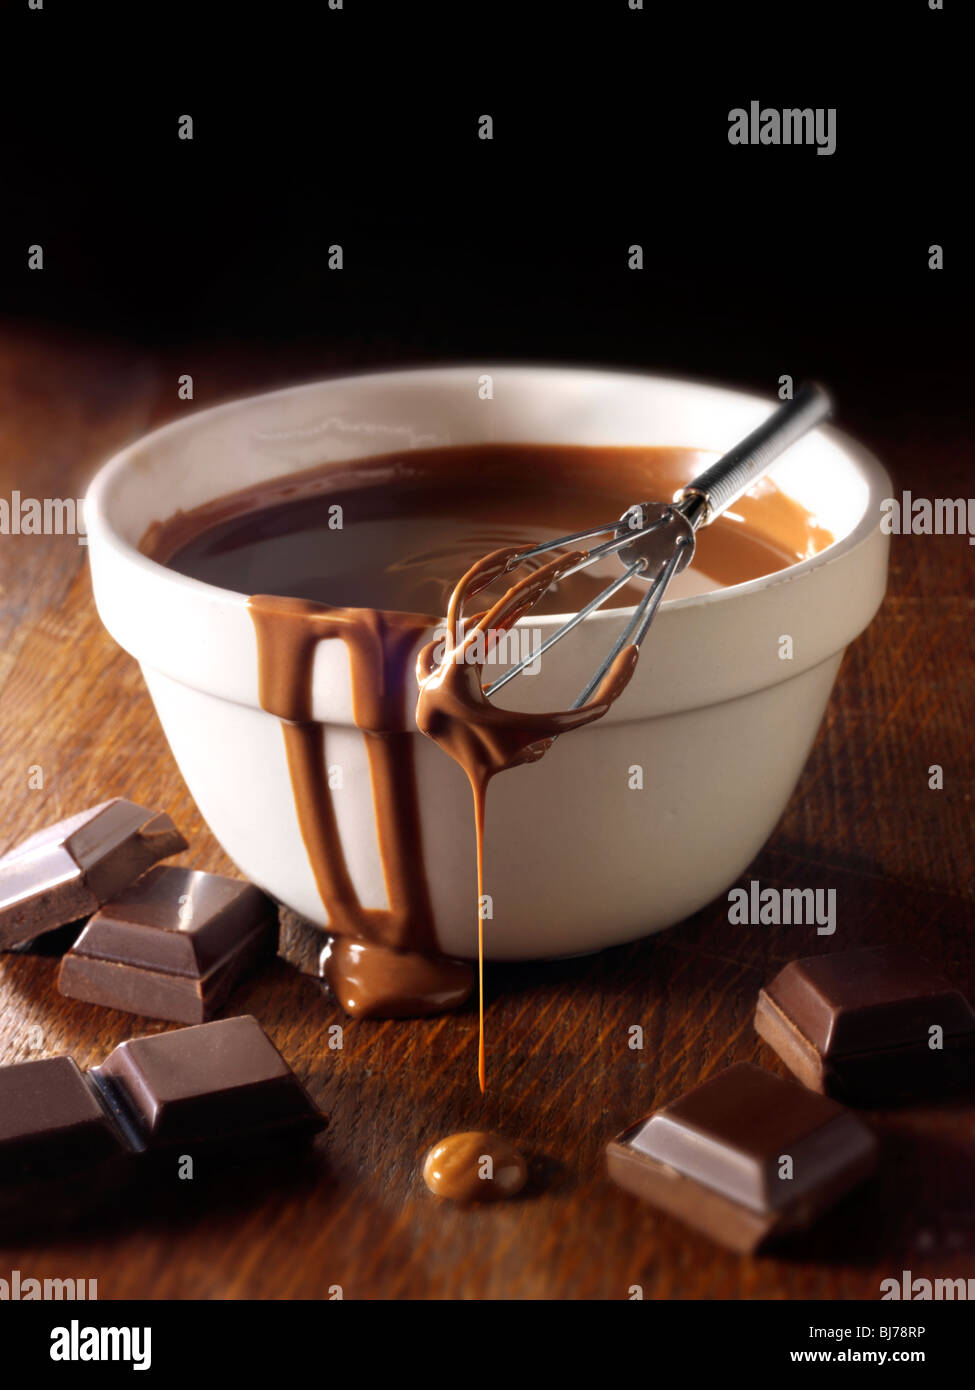 Chocolat fondu d'être remué dans un bol - Photos. Photo Stock